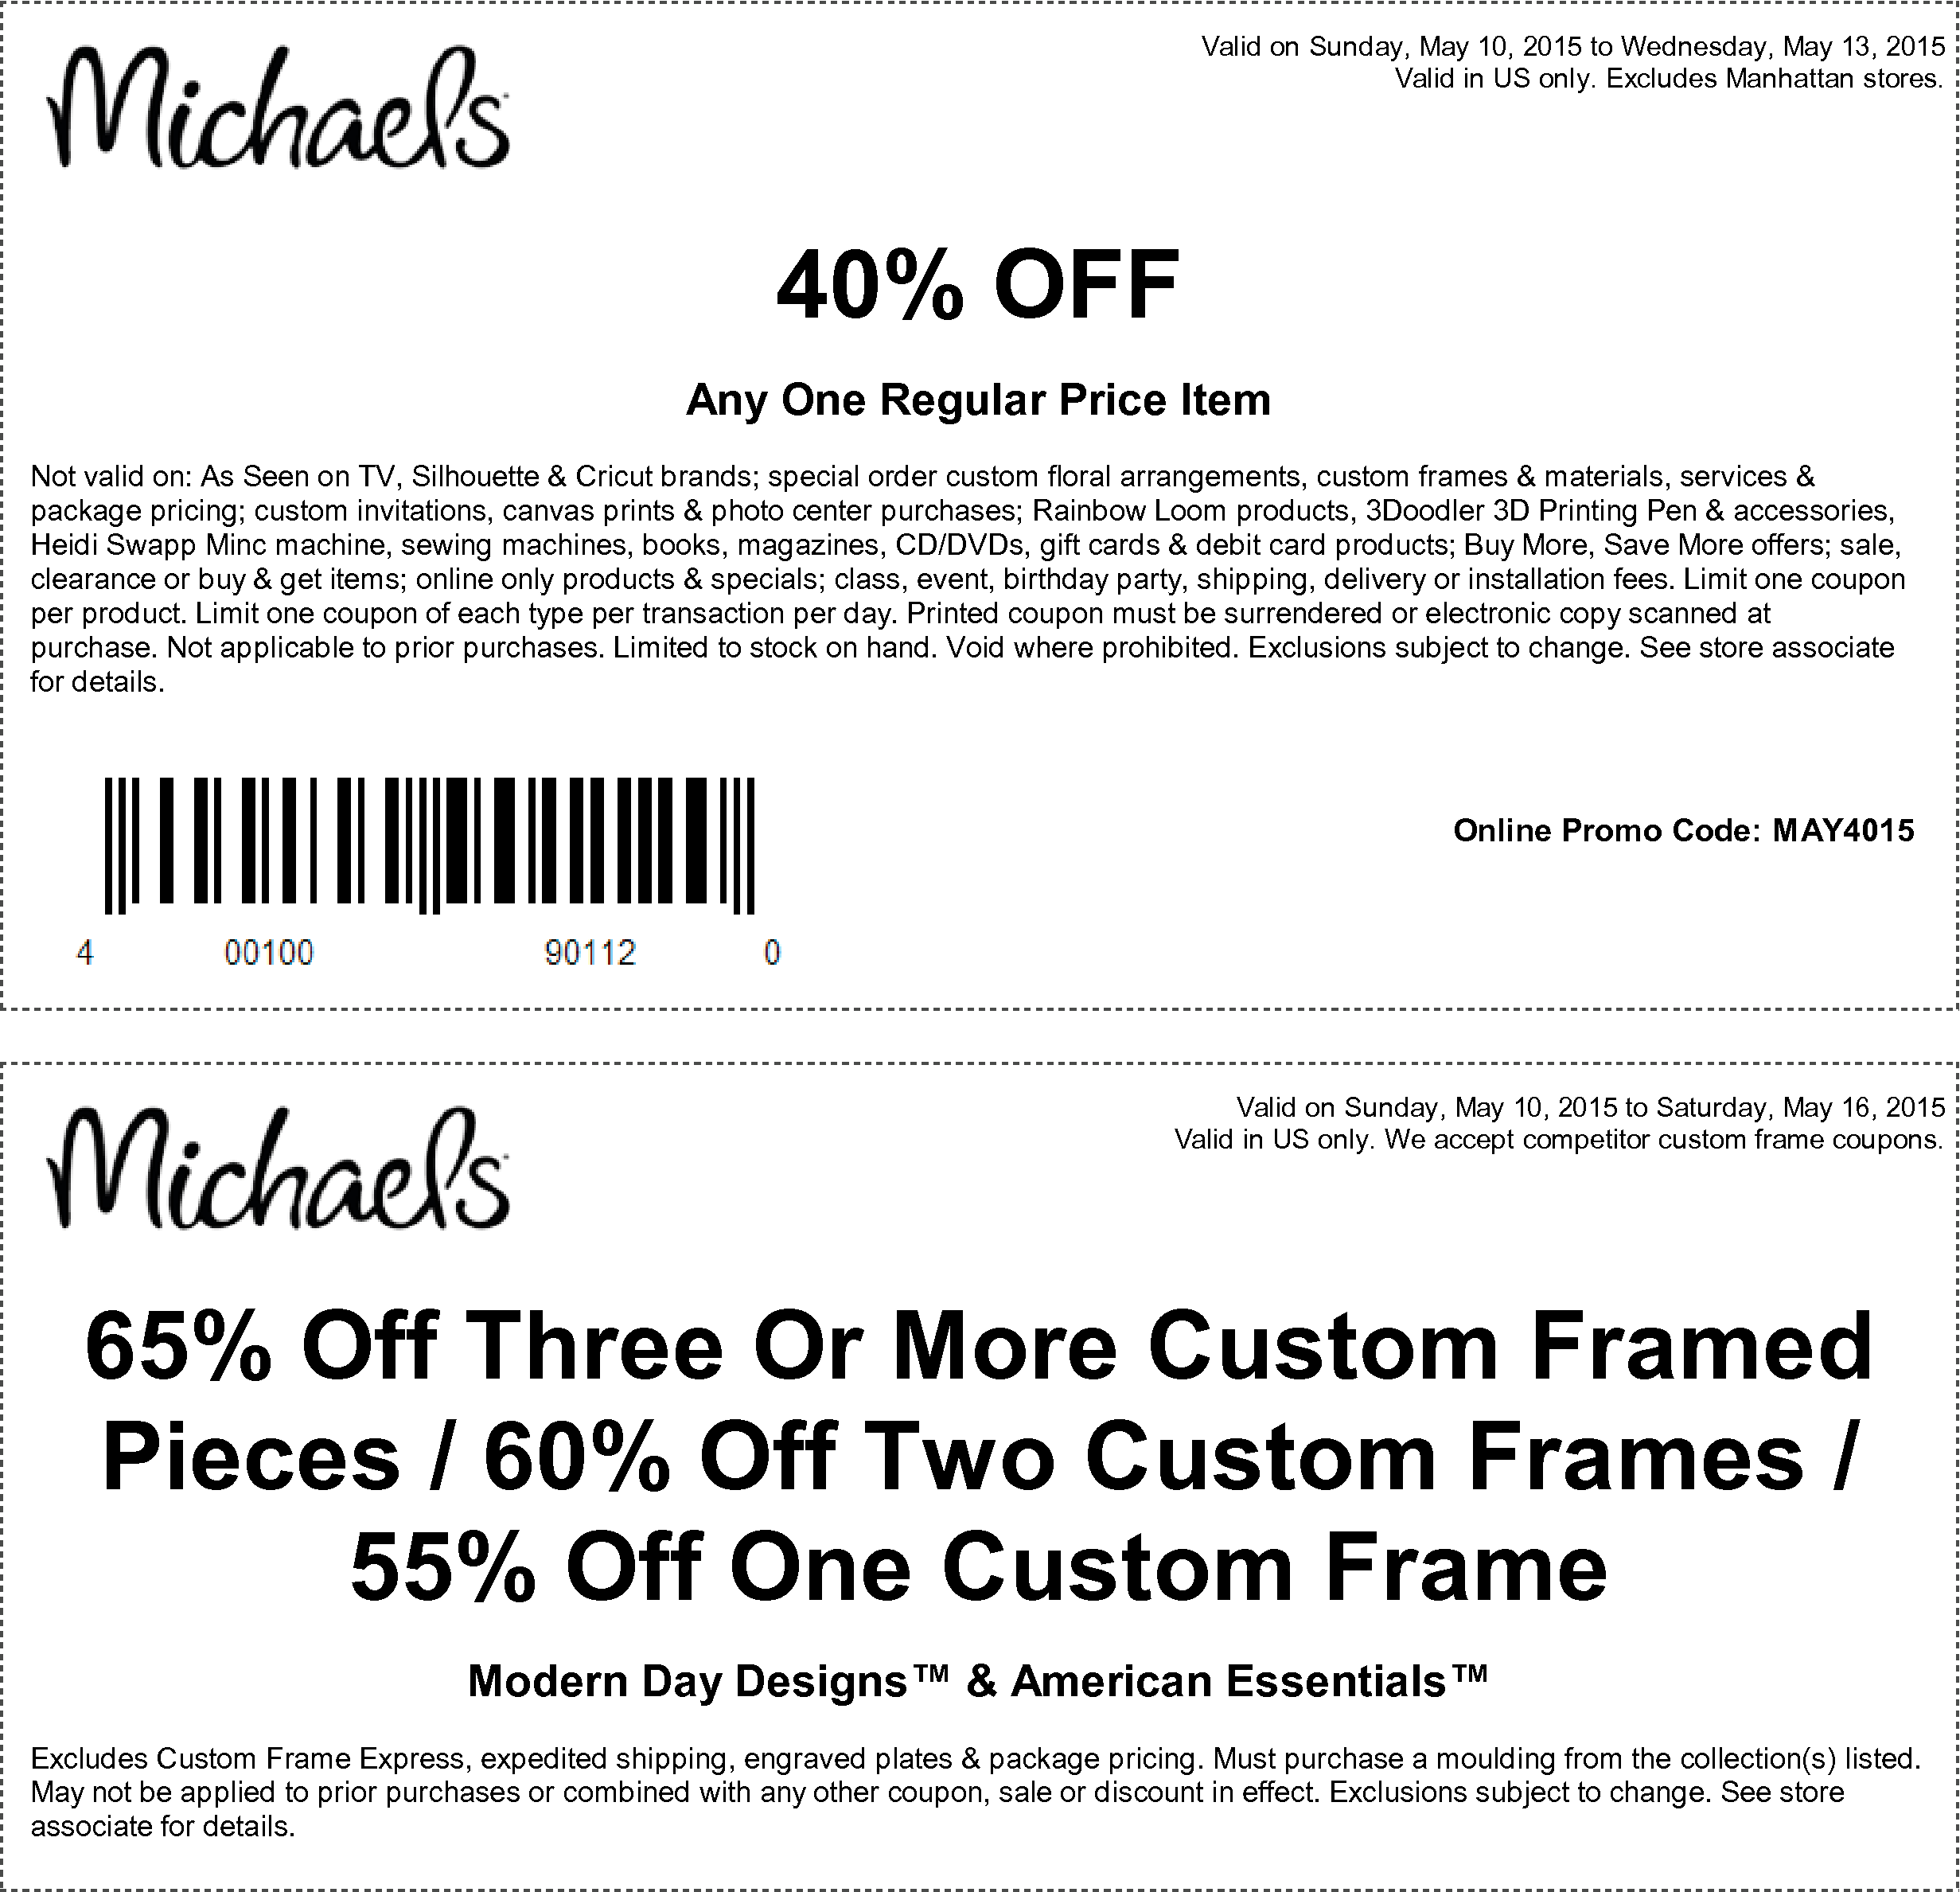 Michaels Coupon August 2017 40% off a single item at Michaels, or online via promo code MAY4015